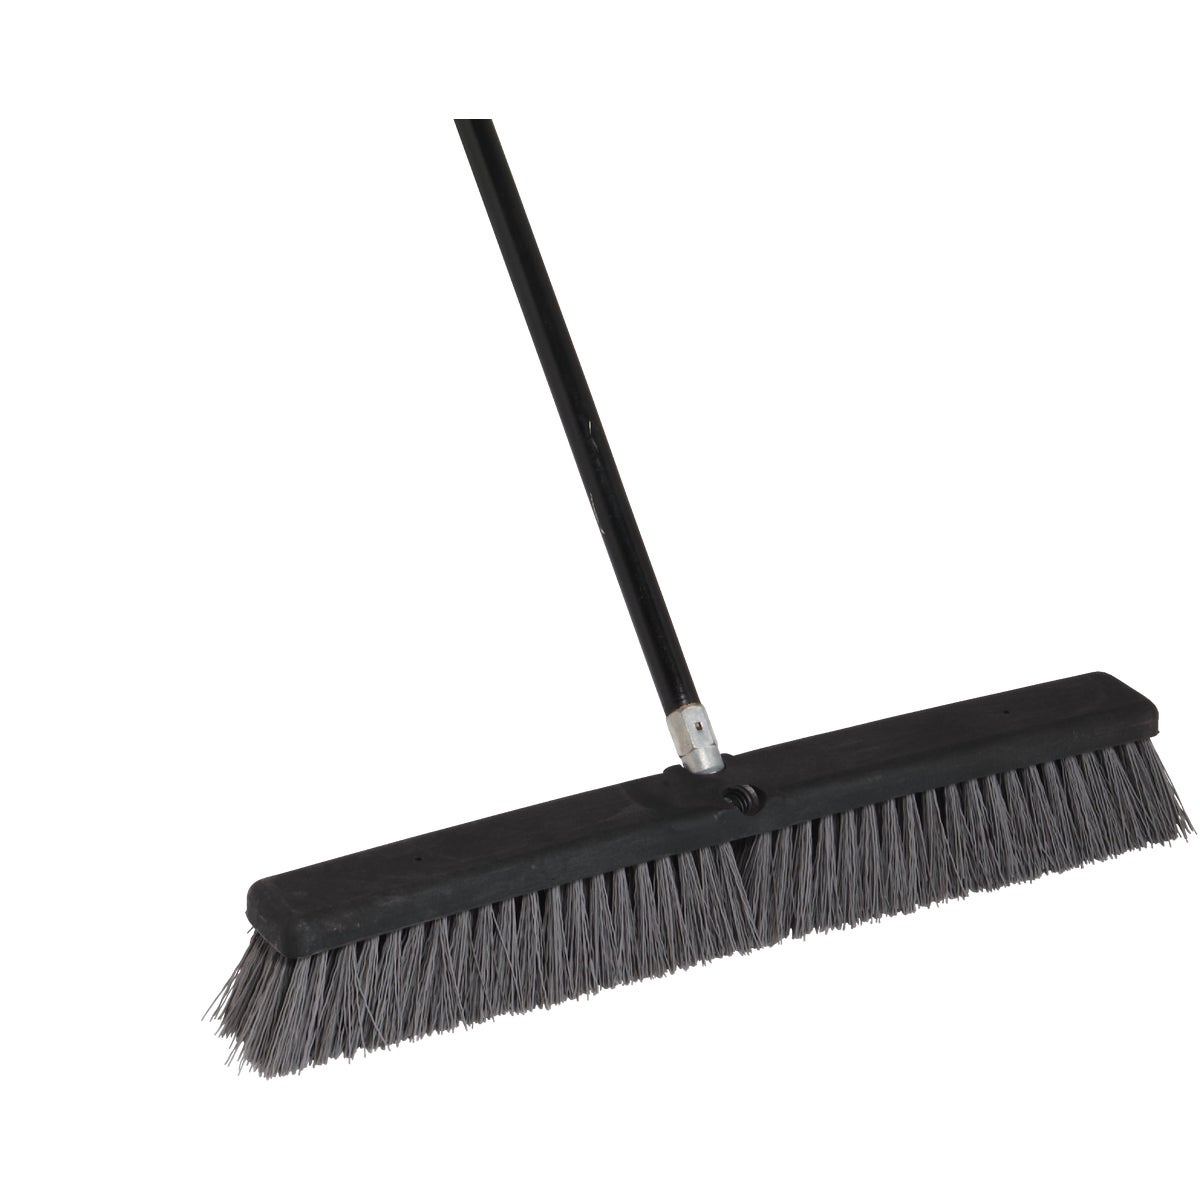 "24"" SYNTHETIC PUSH BROOM - DIB89201 by D Q B Ind"